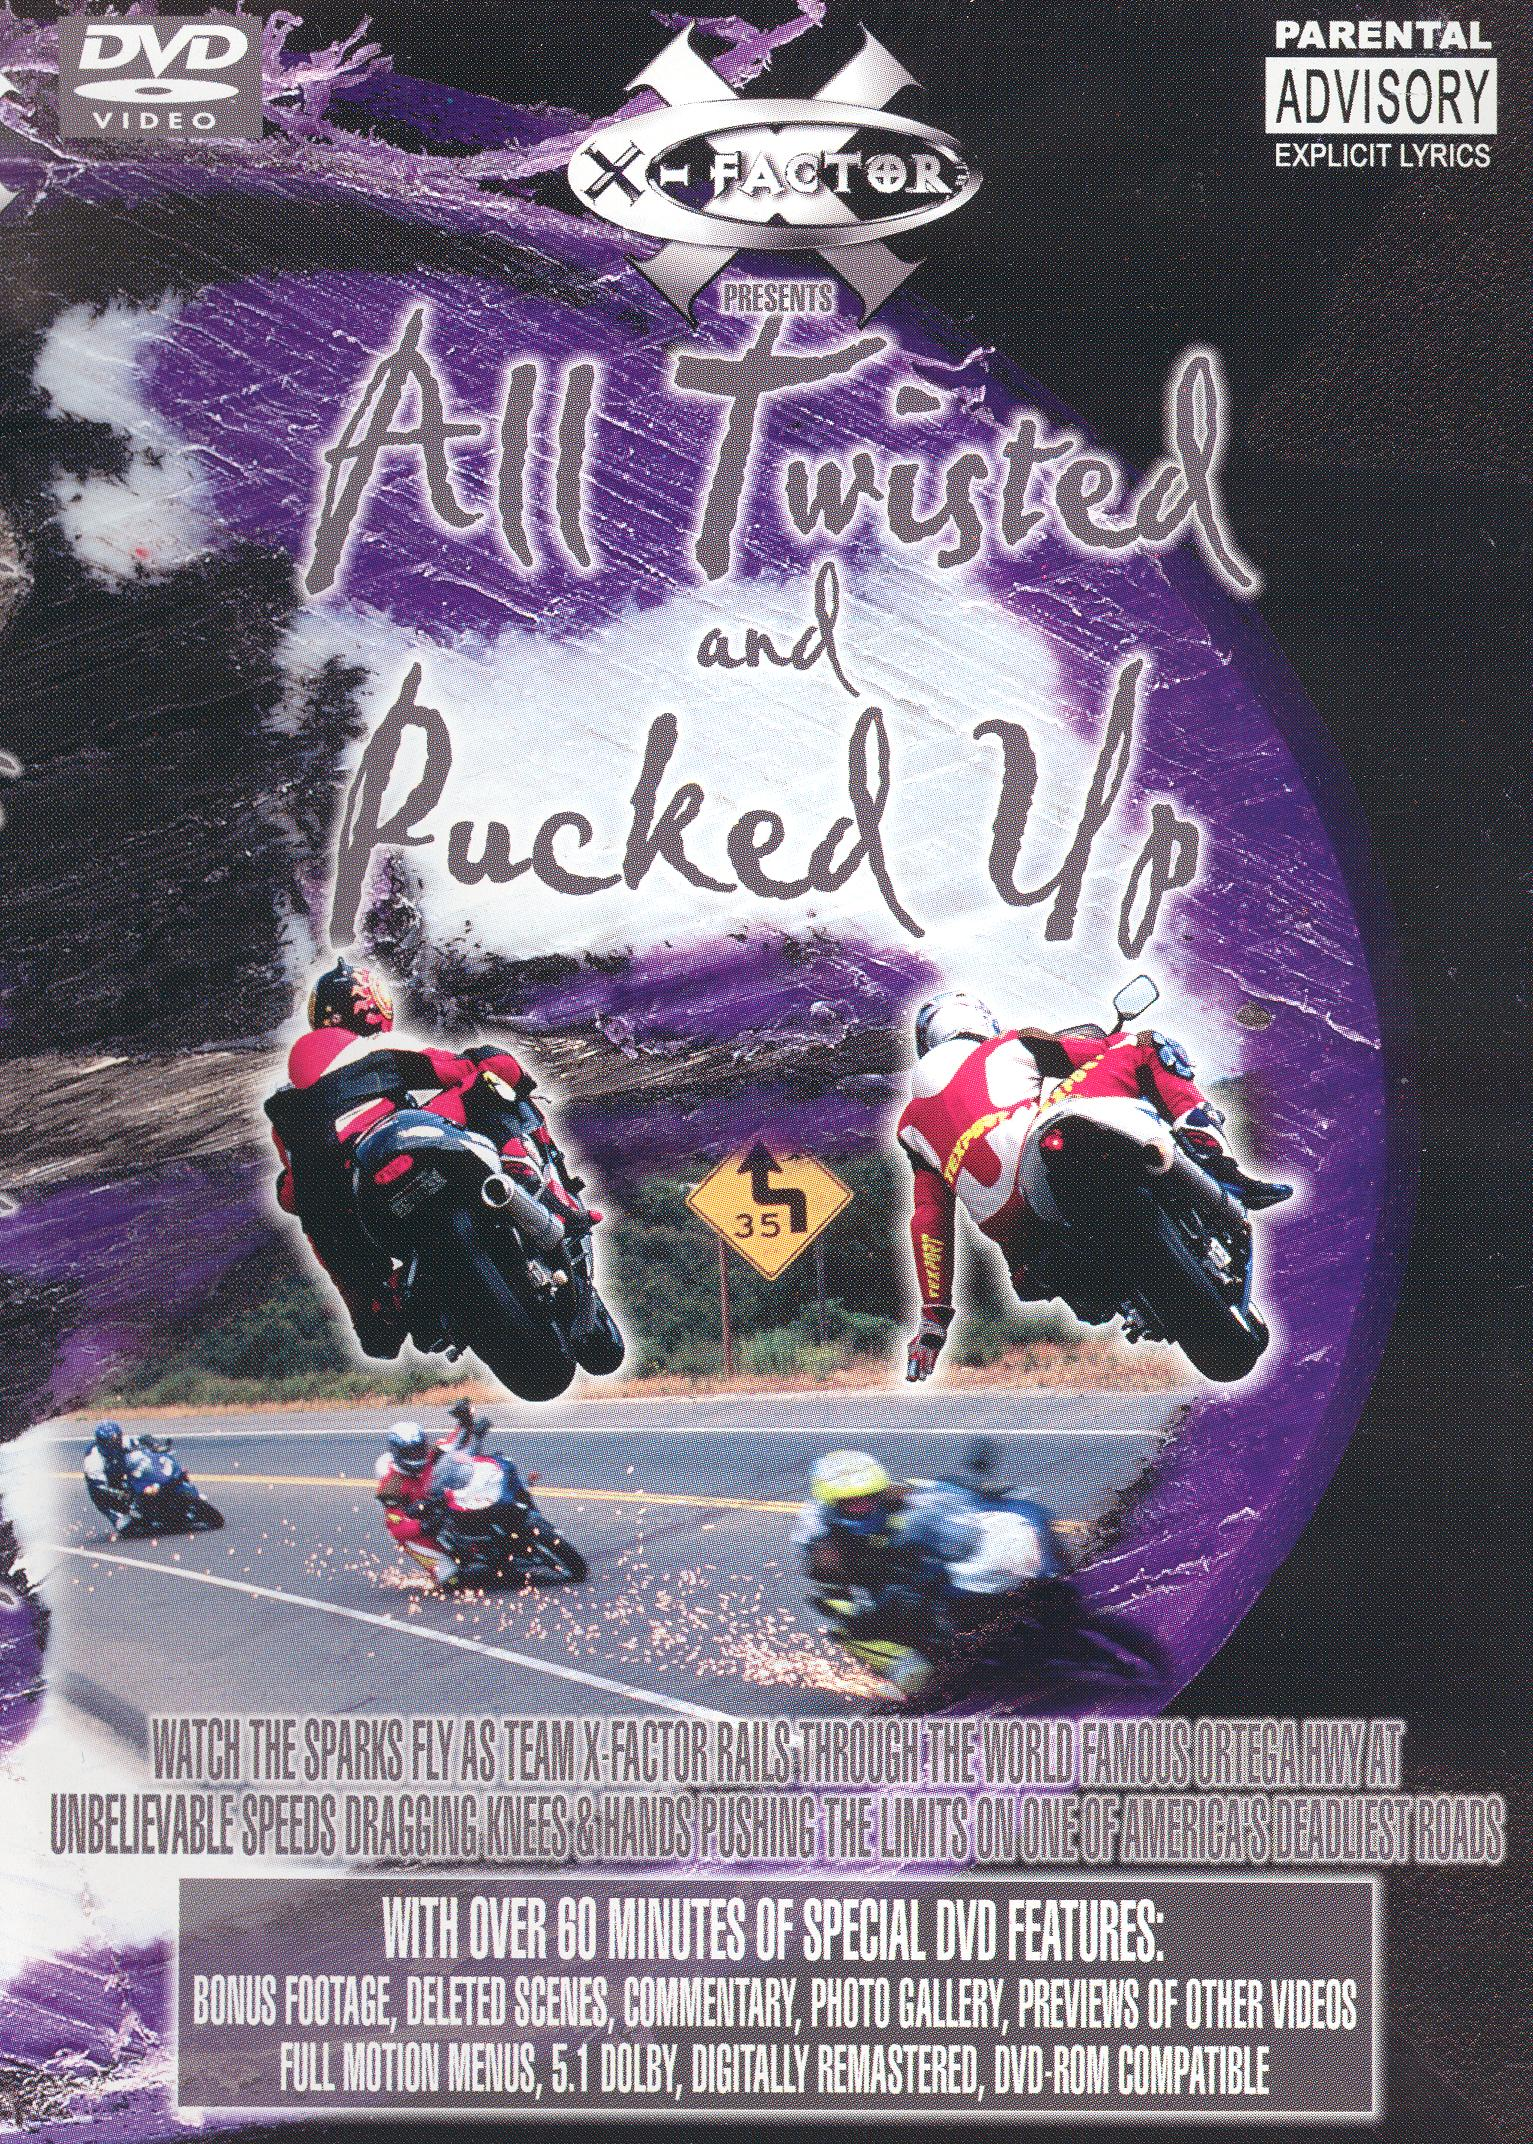 X-Factor Presents All Twisted and Pucked Up